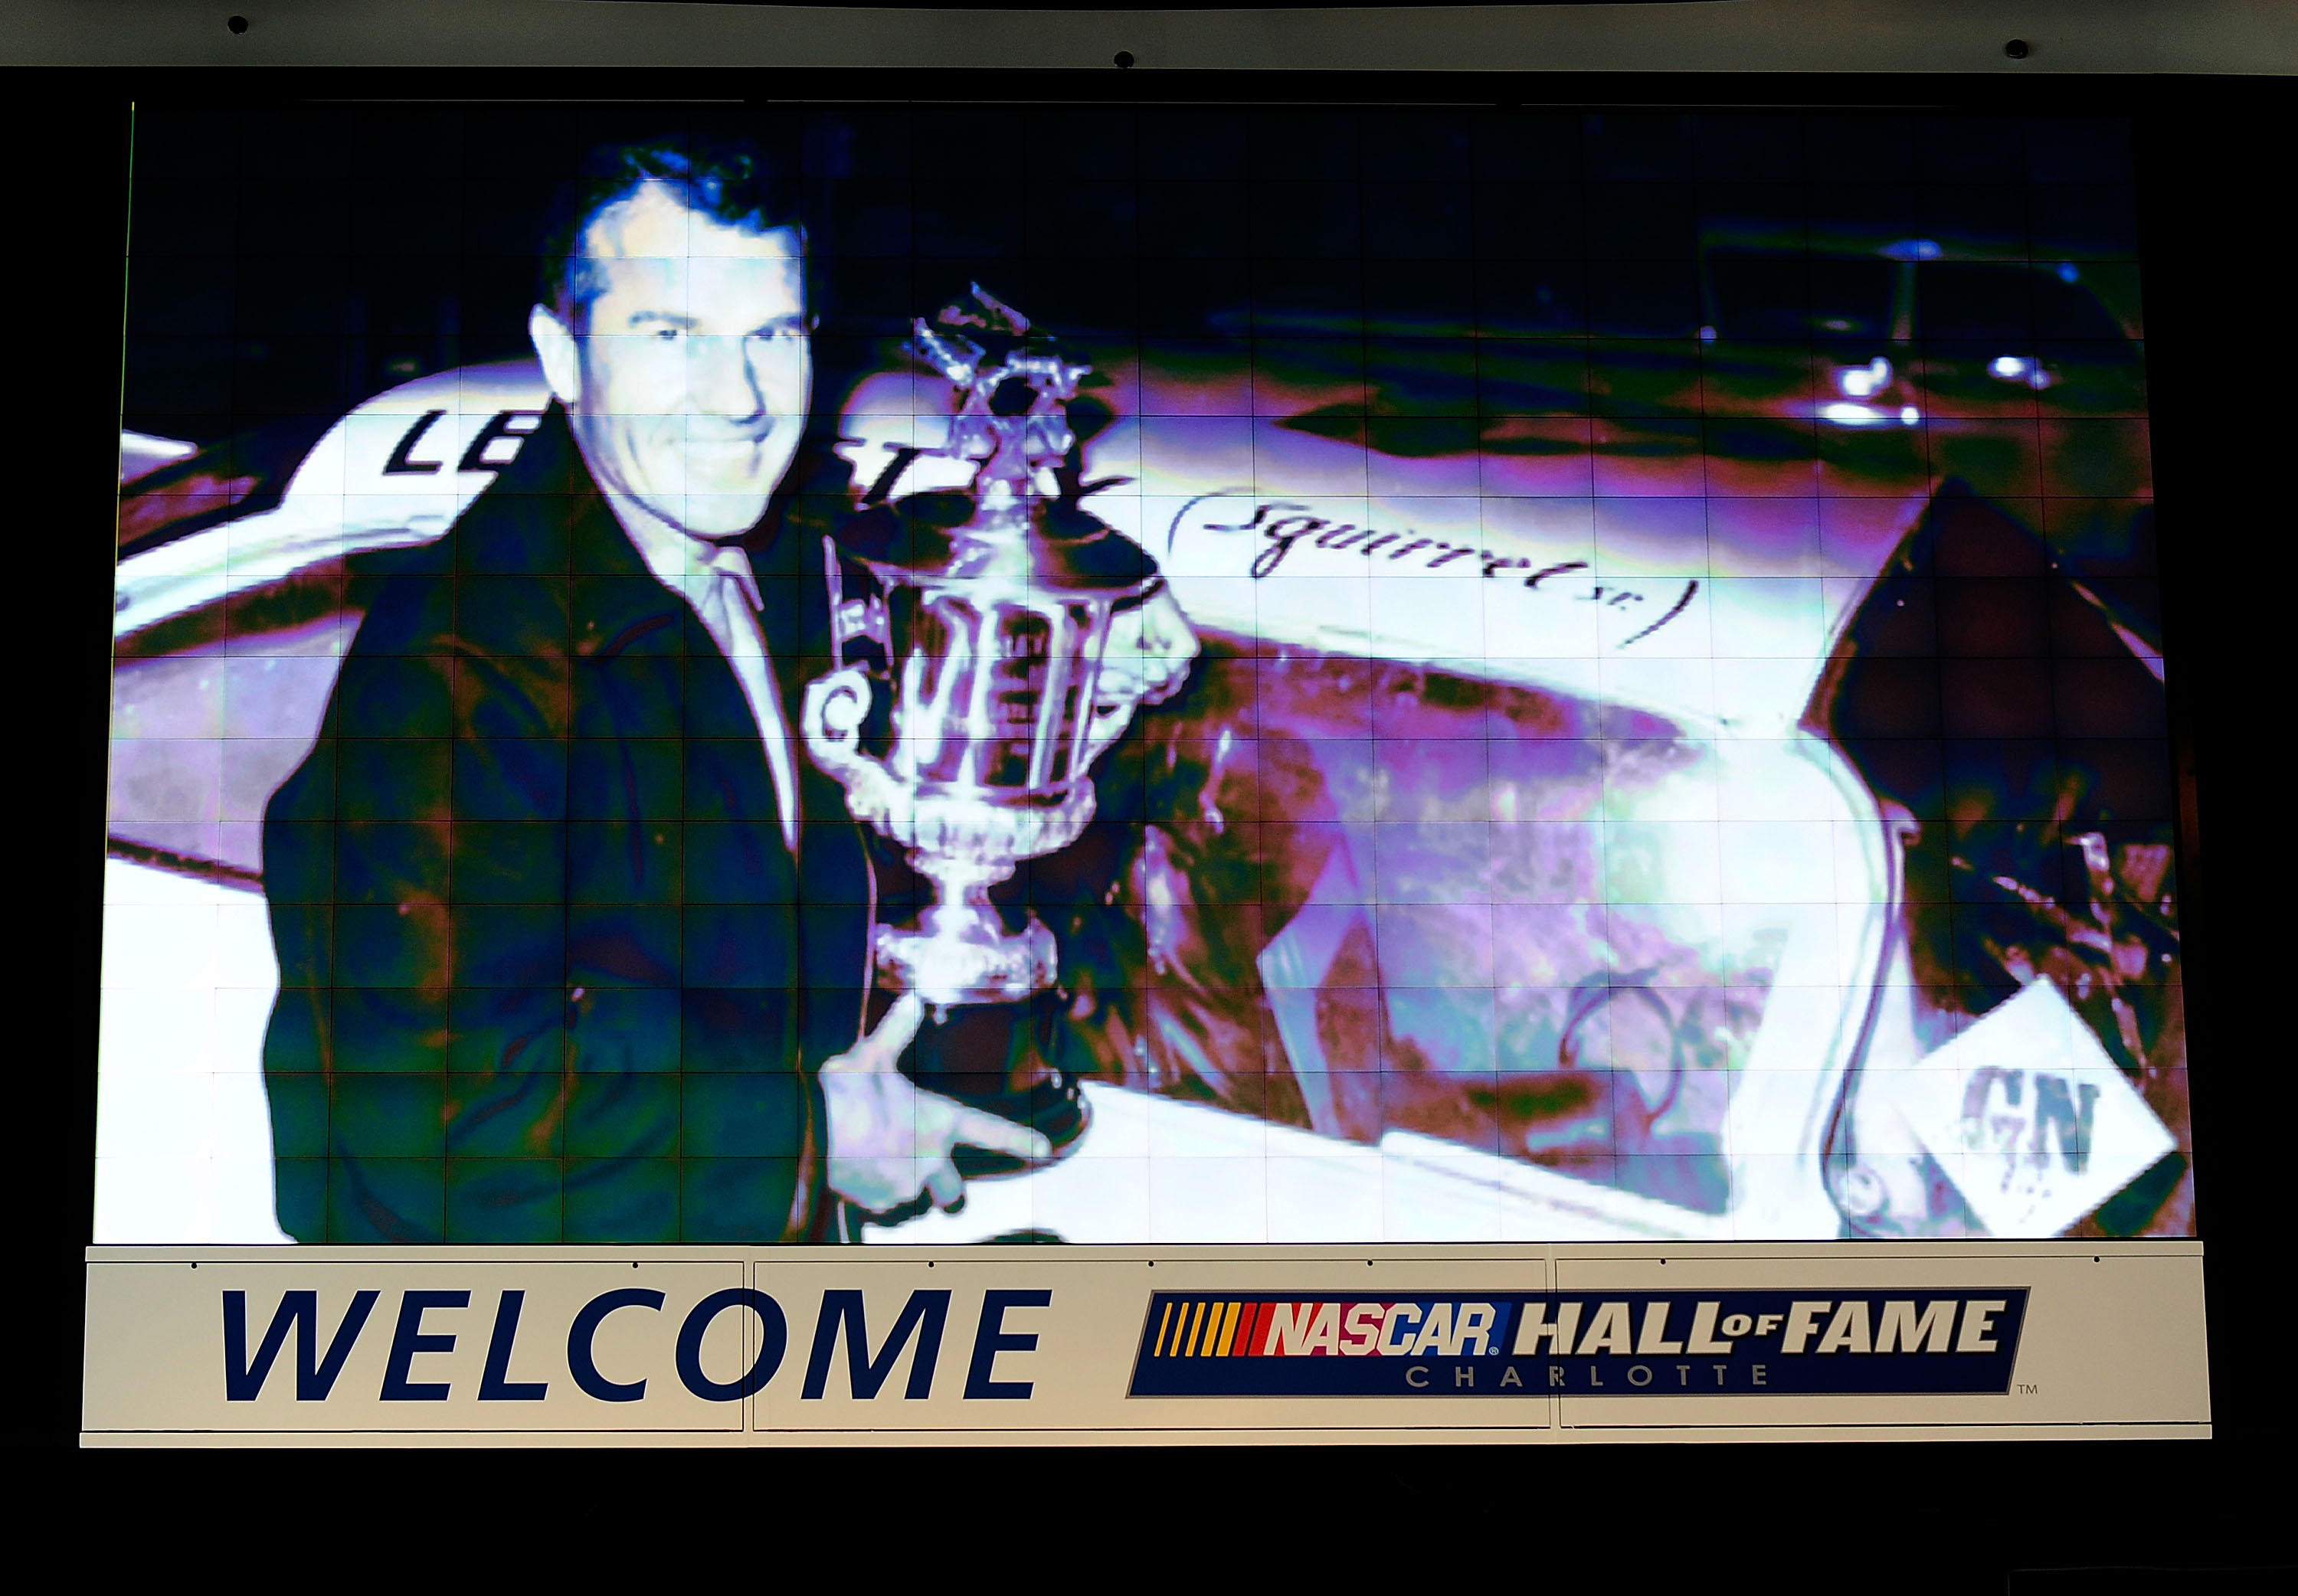 CHARLOTTE, NC - OCTOBER 13:   An image of Lee Petty on the jumbotron during NASCAR Hall of Fame Voting Day at the NASCAR Hall of Fame on October 13, 2010 in Charlotte, North Carolina.  (Photo by Rusty Jarrett/Getty Images for NASCAR)